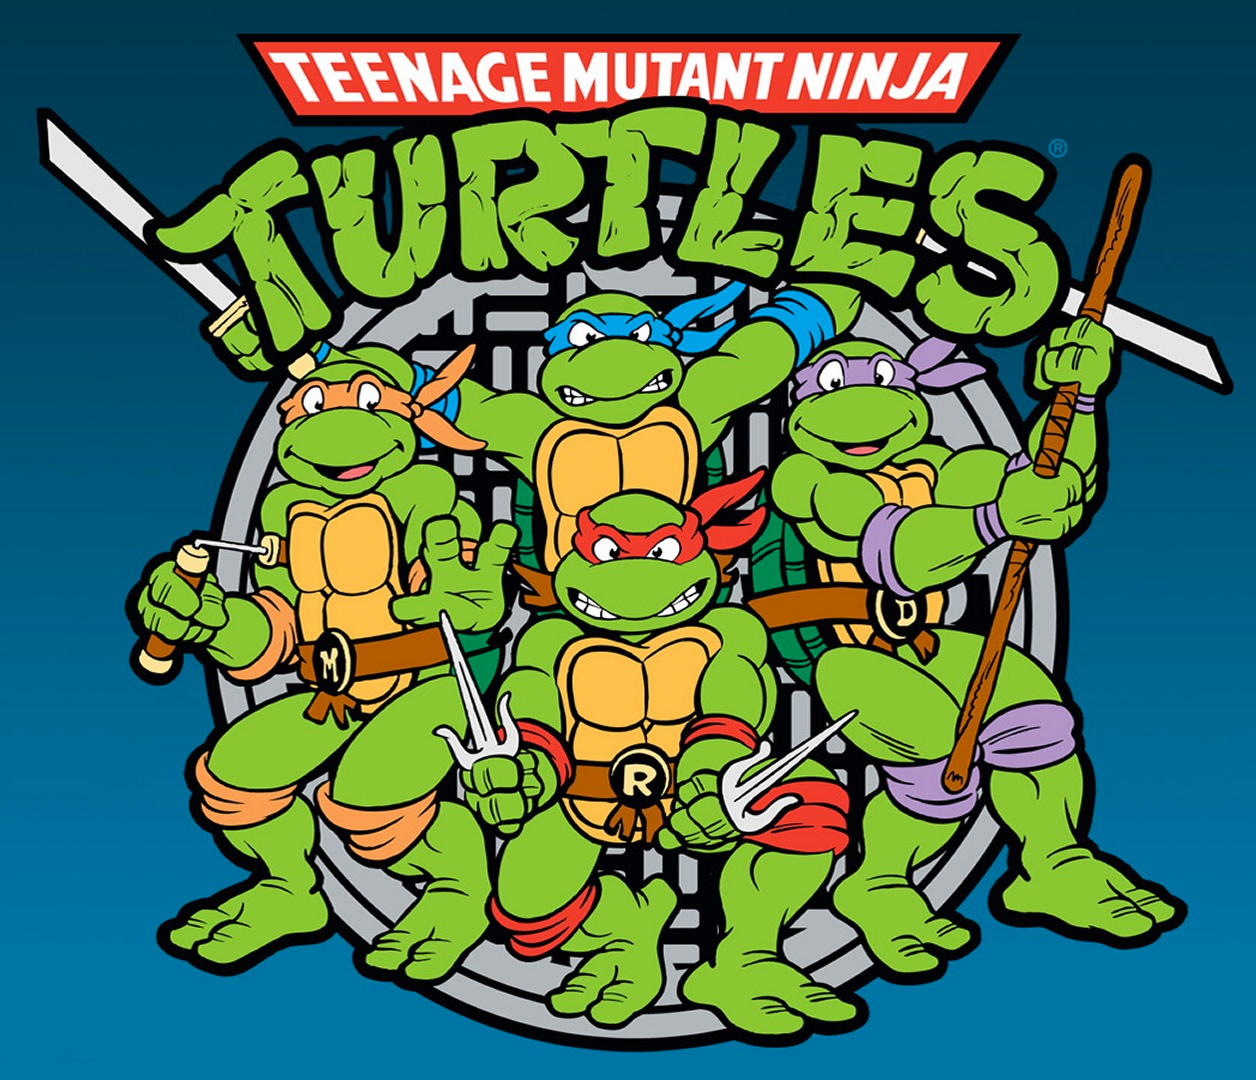 http://www.panelsandpixels.com/review-turtle-power-definitive-history-of-the-teenage-mutant-ninja-turtles/